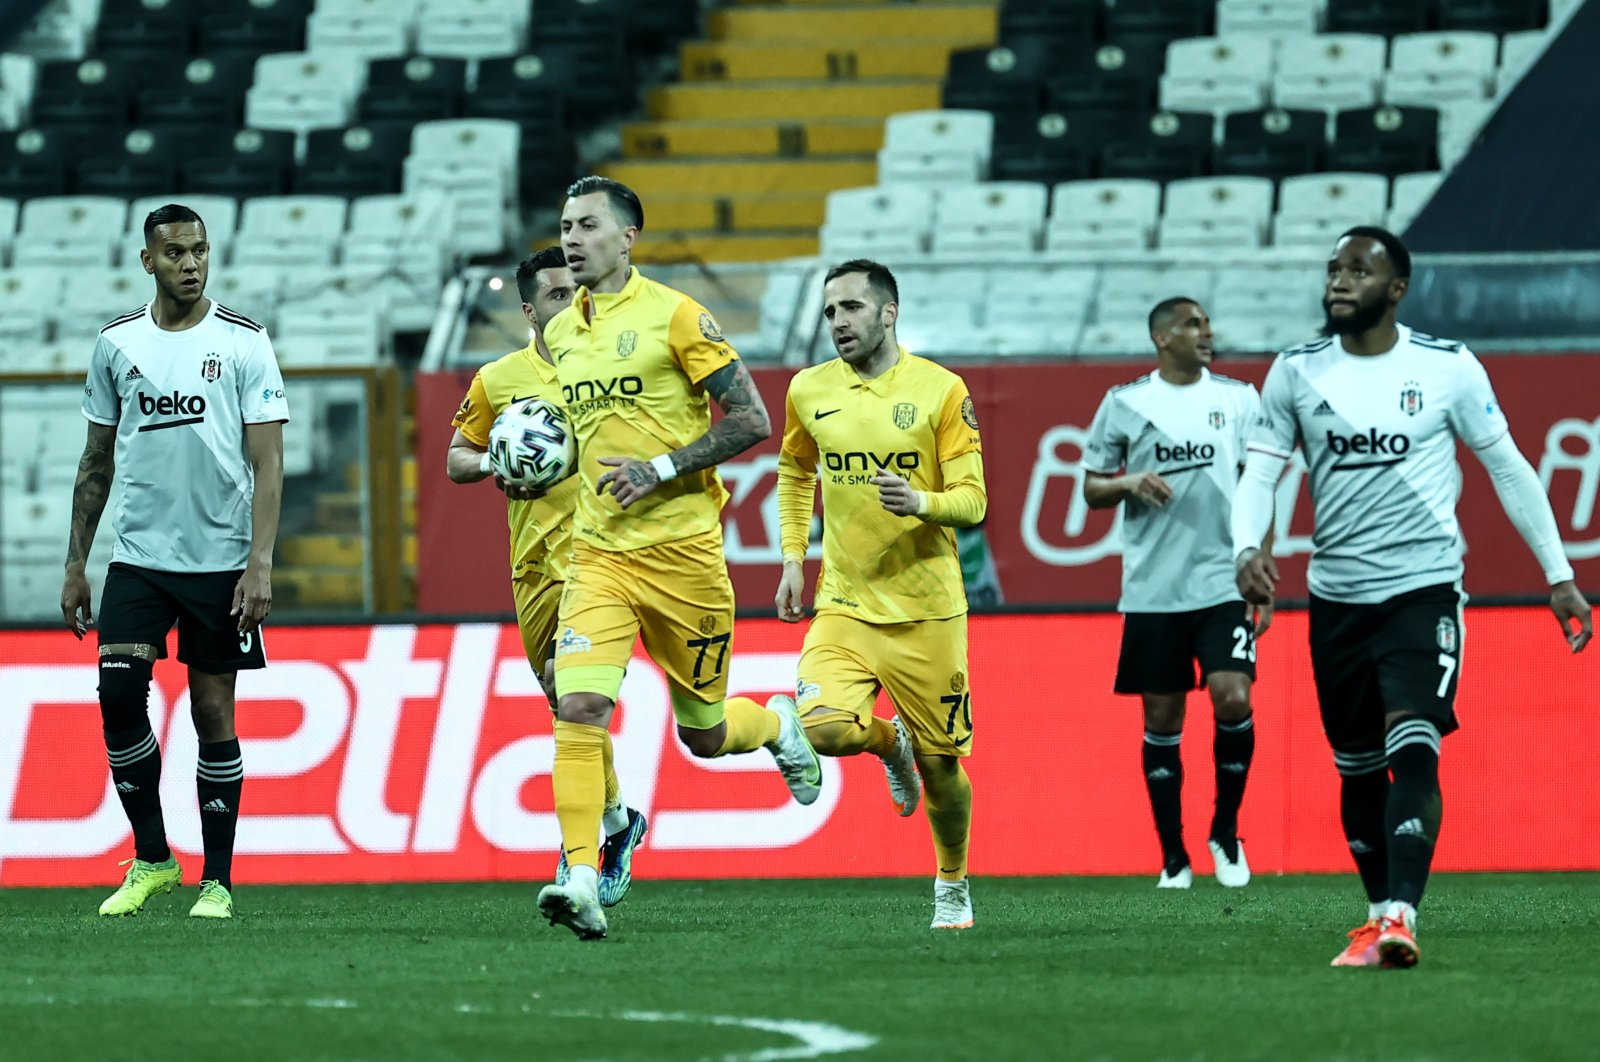 MKE Ankaragücü footballer Emre Güral sprints to the middle of the field with the ball after his team scored a penalty goal against Beşiktaş in a match that ended 2-2 at the Vodafone Arena, Istanbul, Turkey, April 16, 2021. (AA Photo)